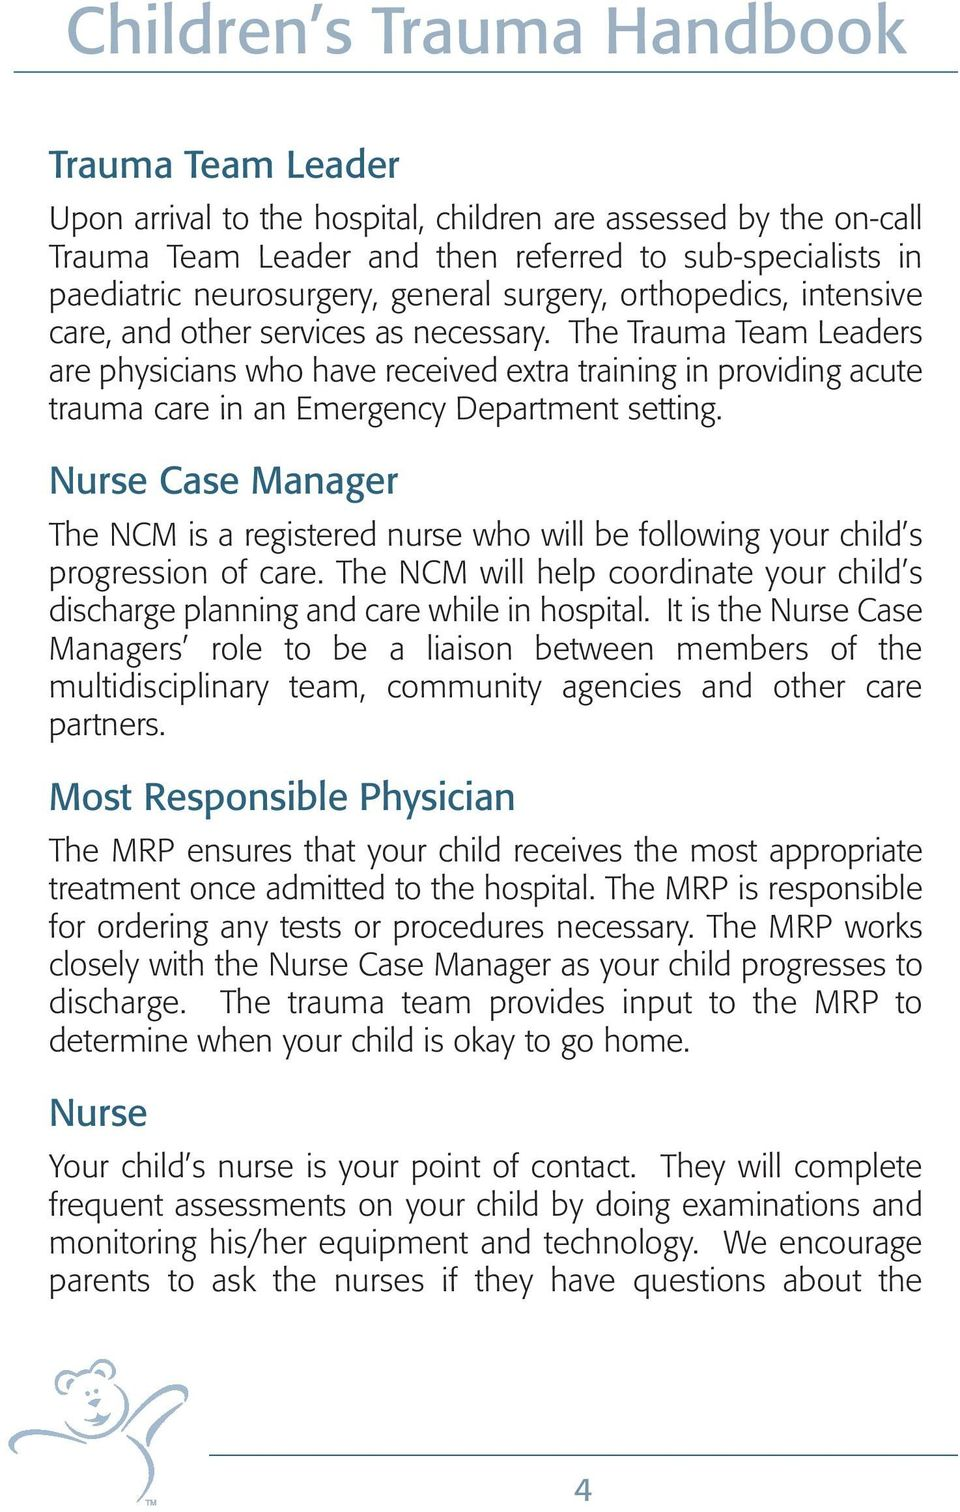 Nurse Case Manager The NCM is a registered nurse who will be following your child s progression of care. The NCM will help coordinate your child s discharge planning and care while in hospital.